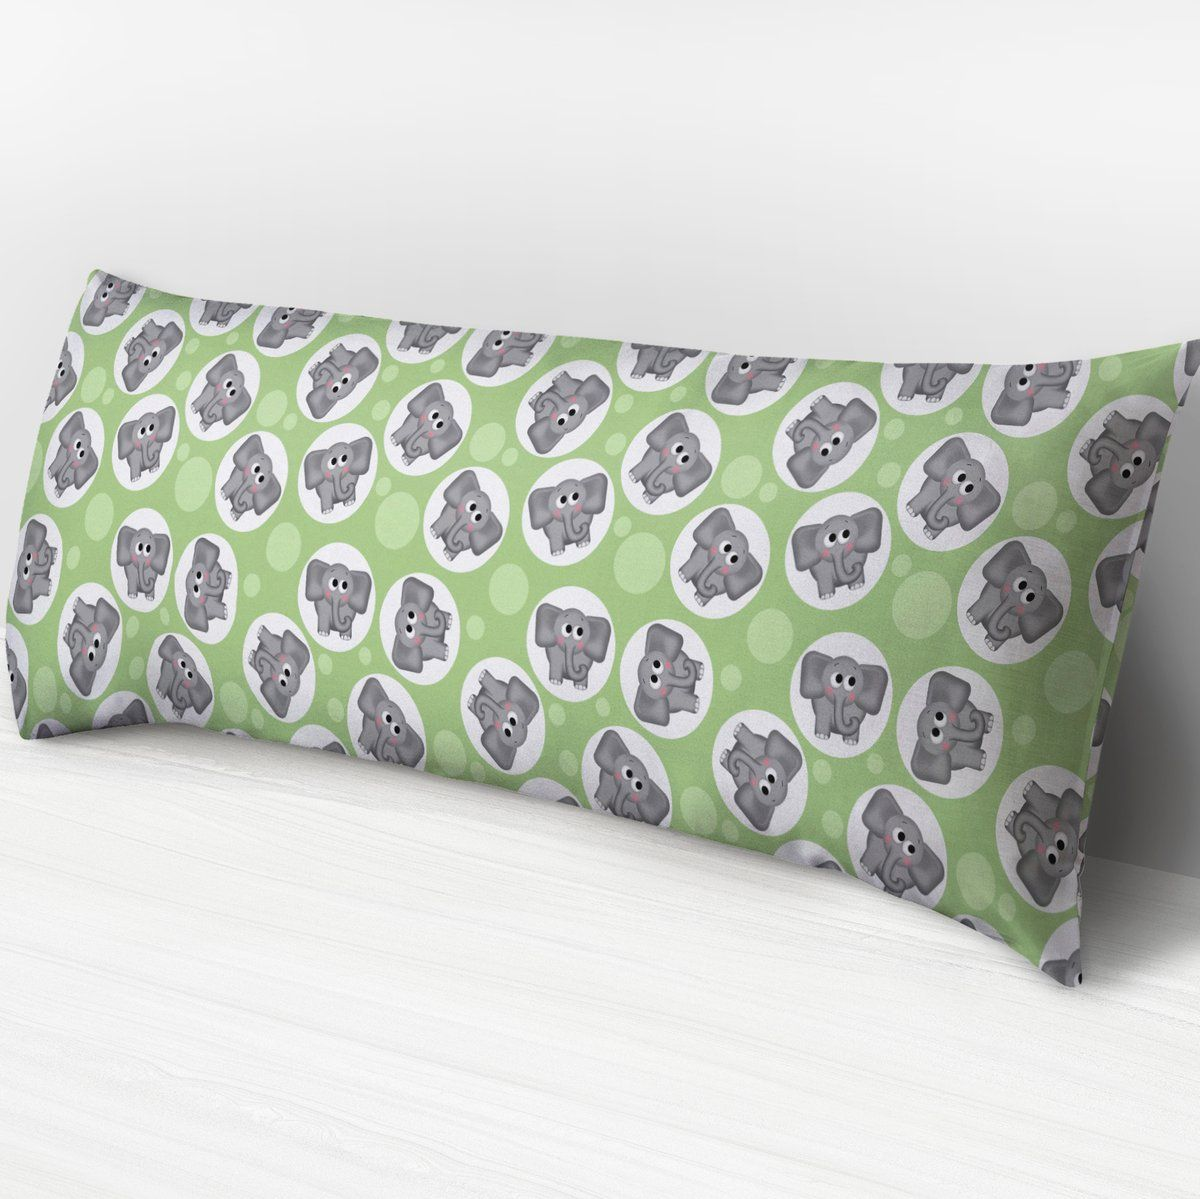 Adorable elephant pattern light green body pillow or cover body